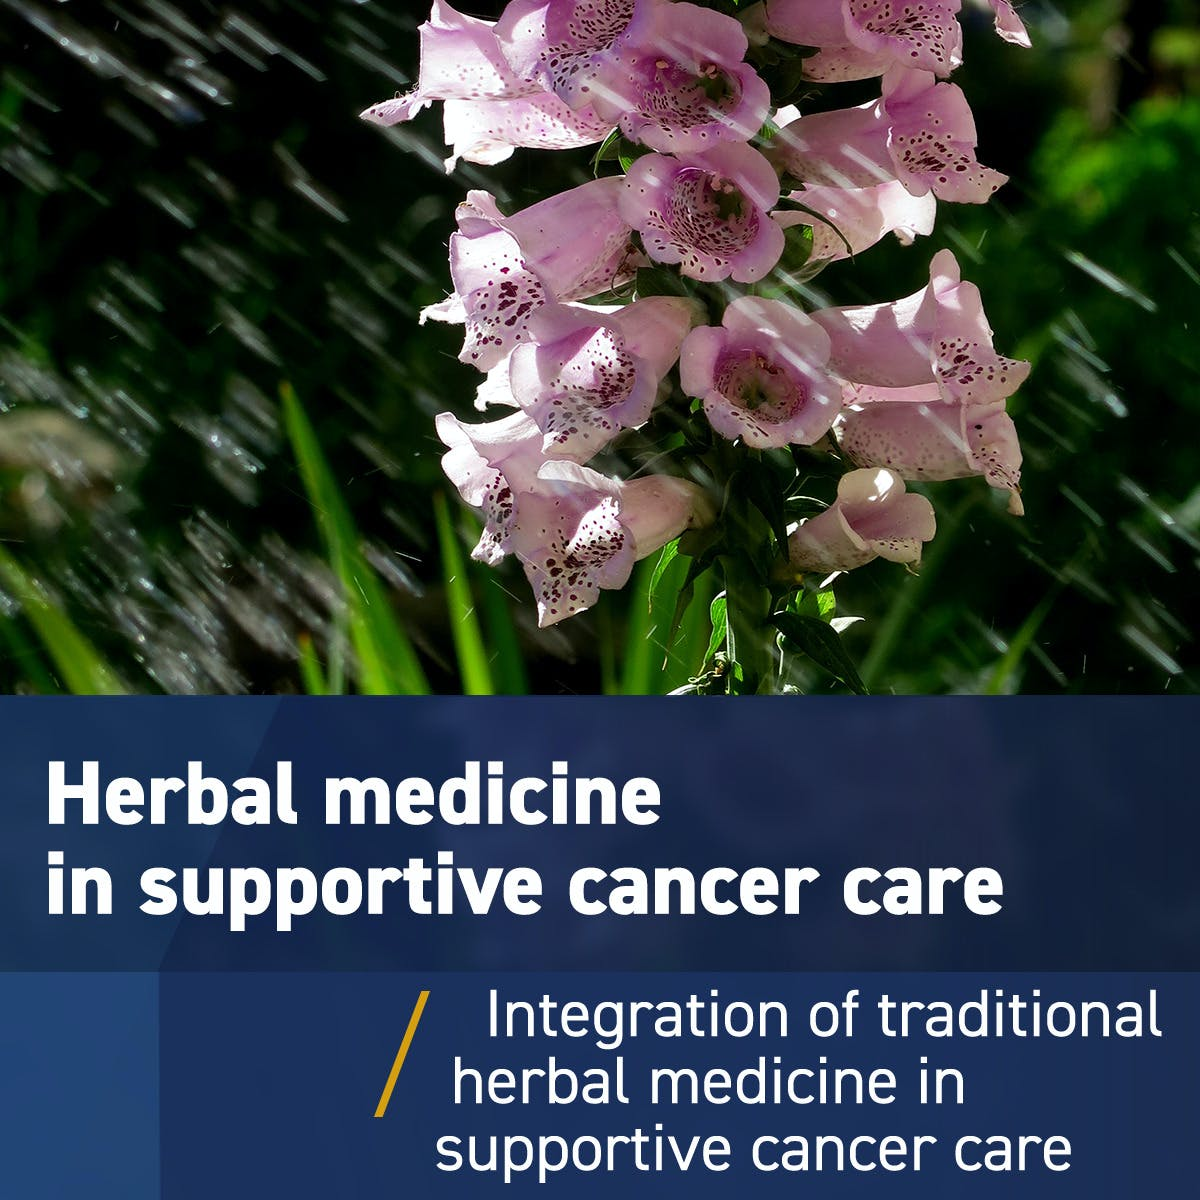 Traditional herbal medicine in supportive cancer care: From alternative to integrative